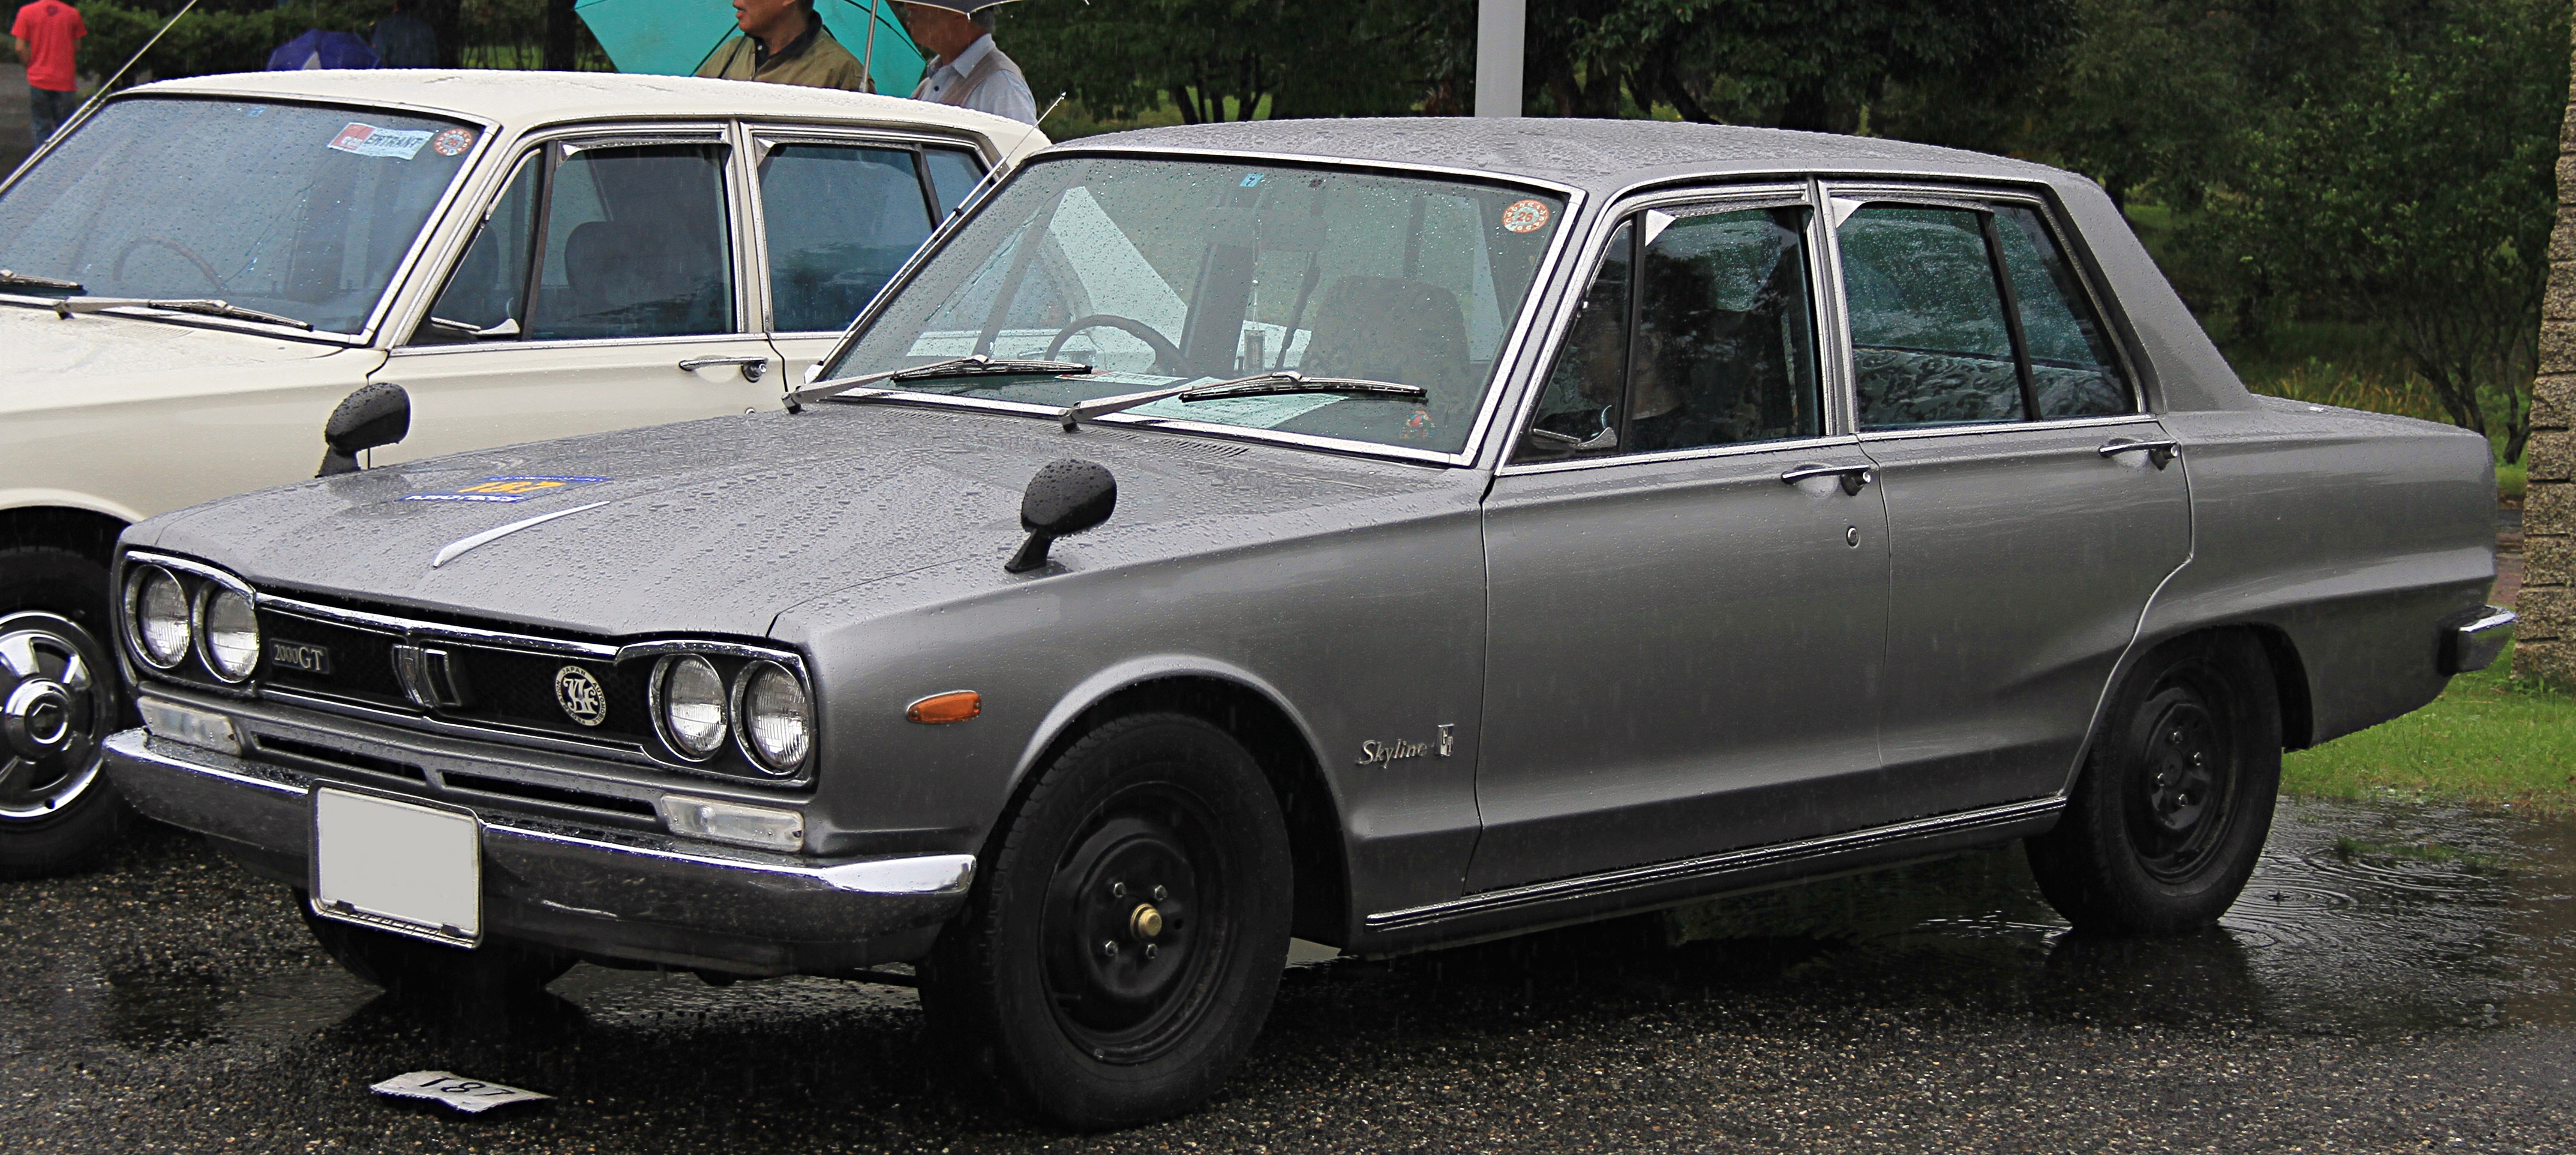 Where Is Nissan Made >> File:1971 Nissan Skyline Sedan 2000GT.jpg - Wikimedia Commons